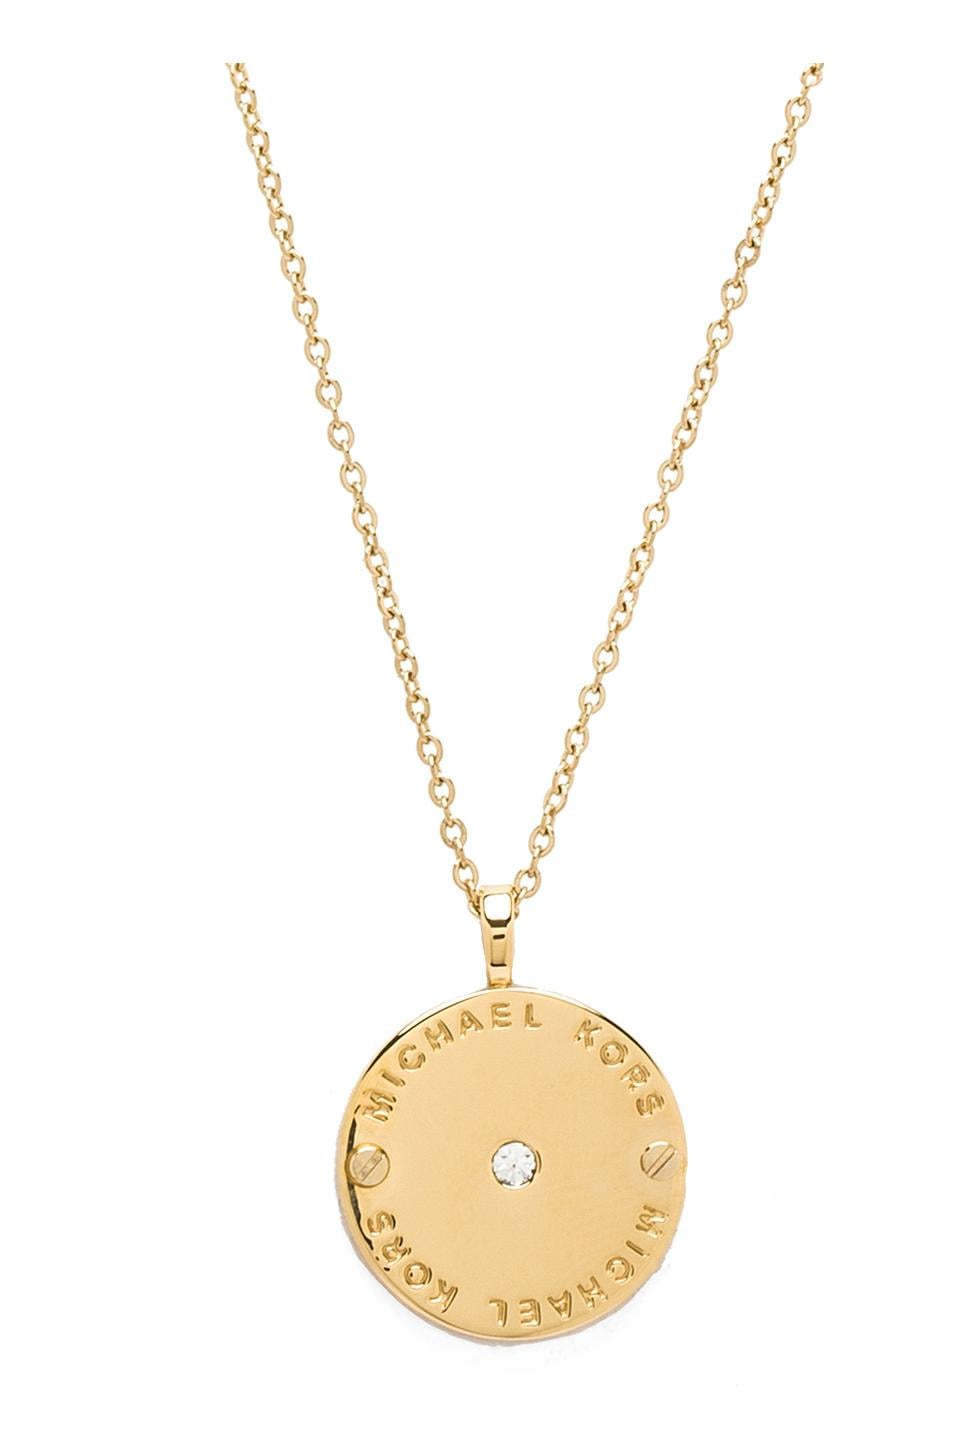 Michael Kors Disc Necklace in Gold